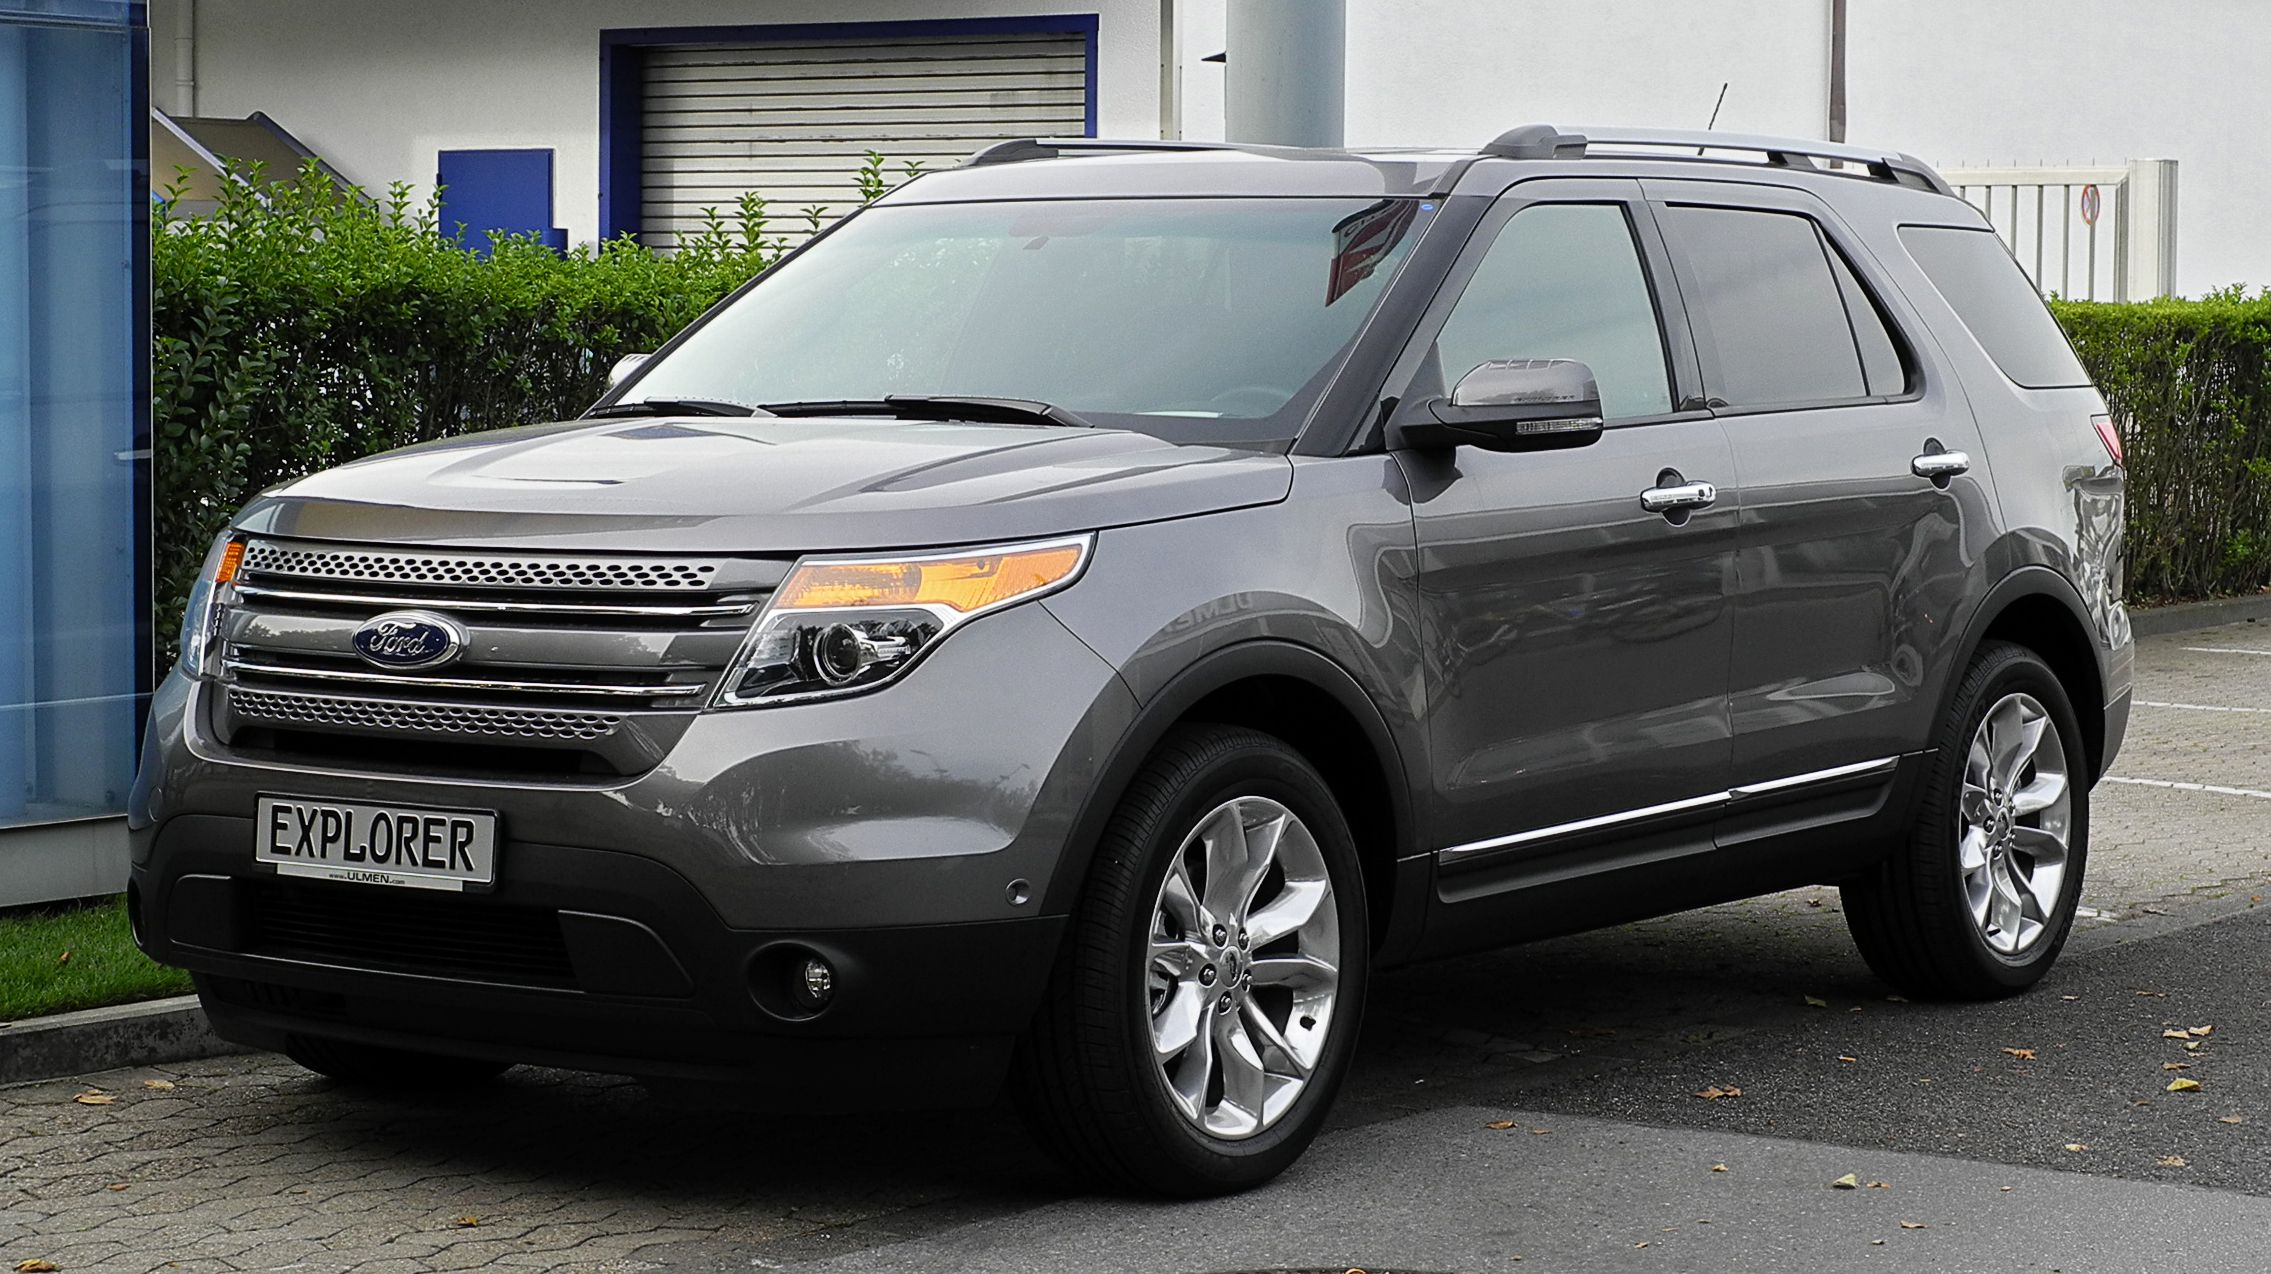 2015 FORD Explorer The Crossover Your Family Needs